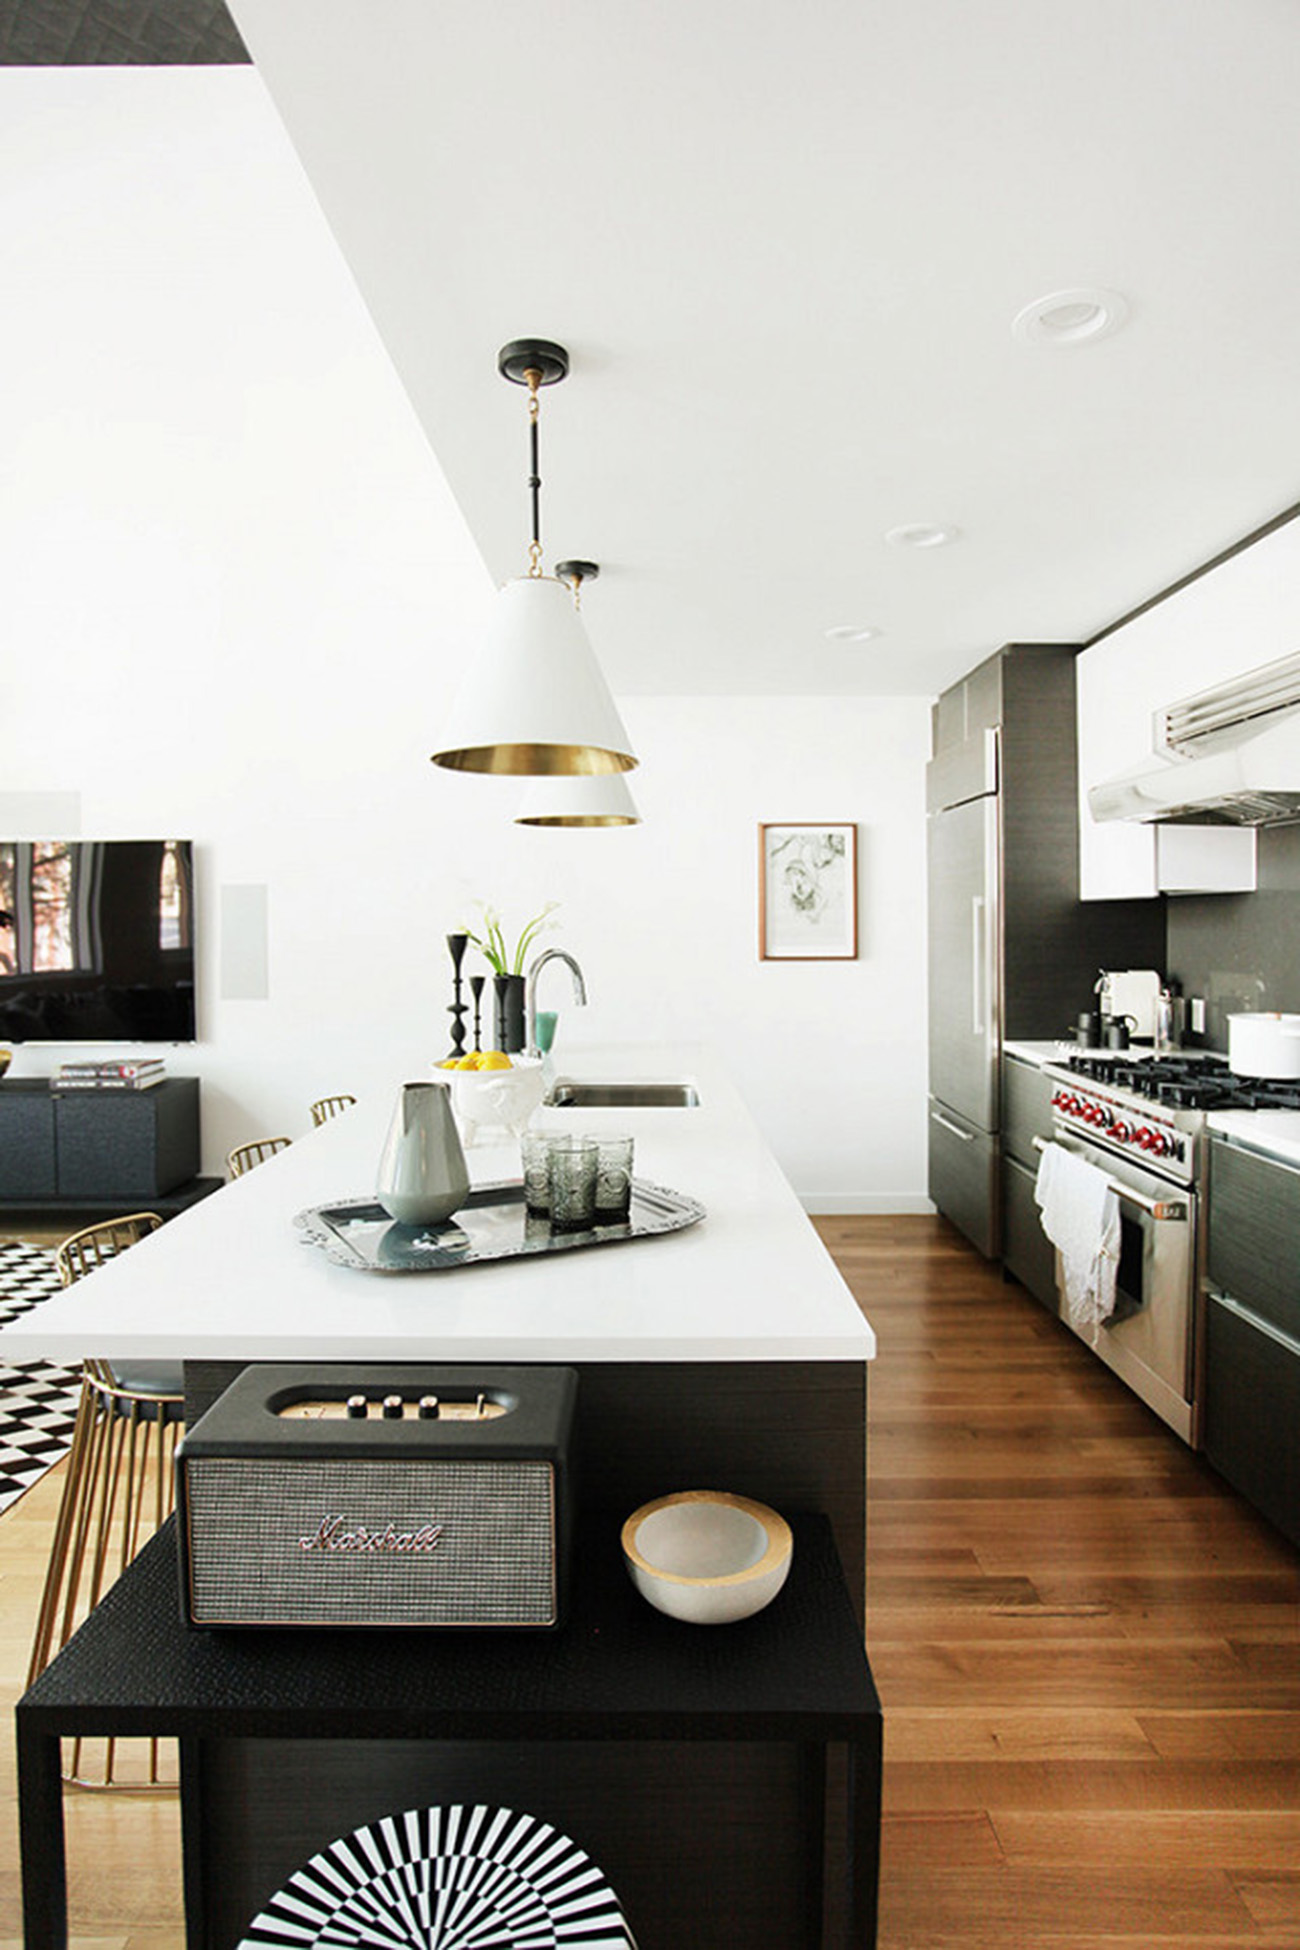 tour-a-modern-brooklyn-home-with-gorgeous-accent-walls-1954276-1477525565.640x0c